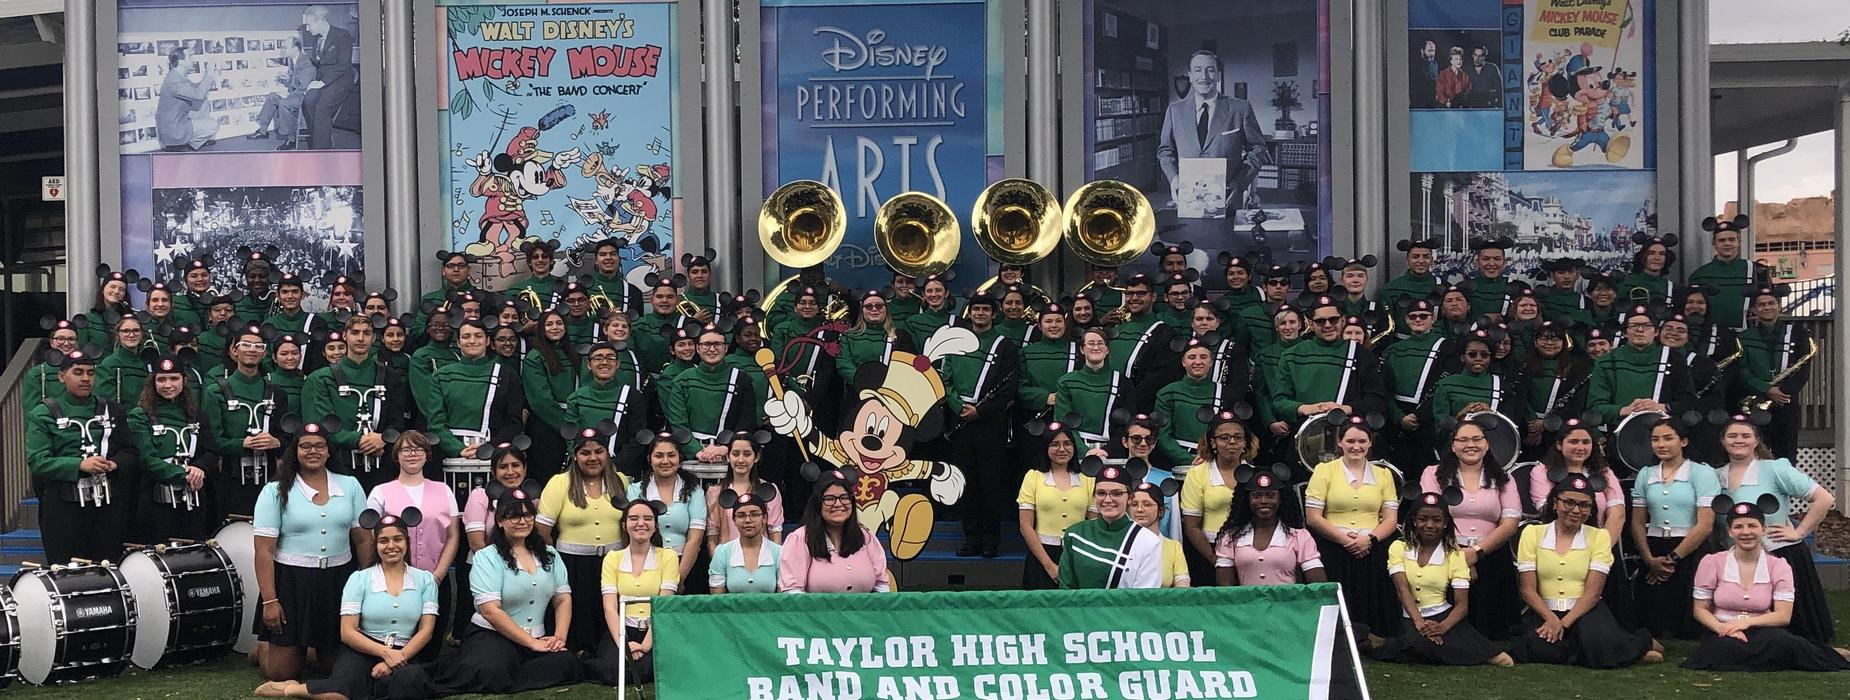 Band at Disney 2020